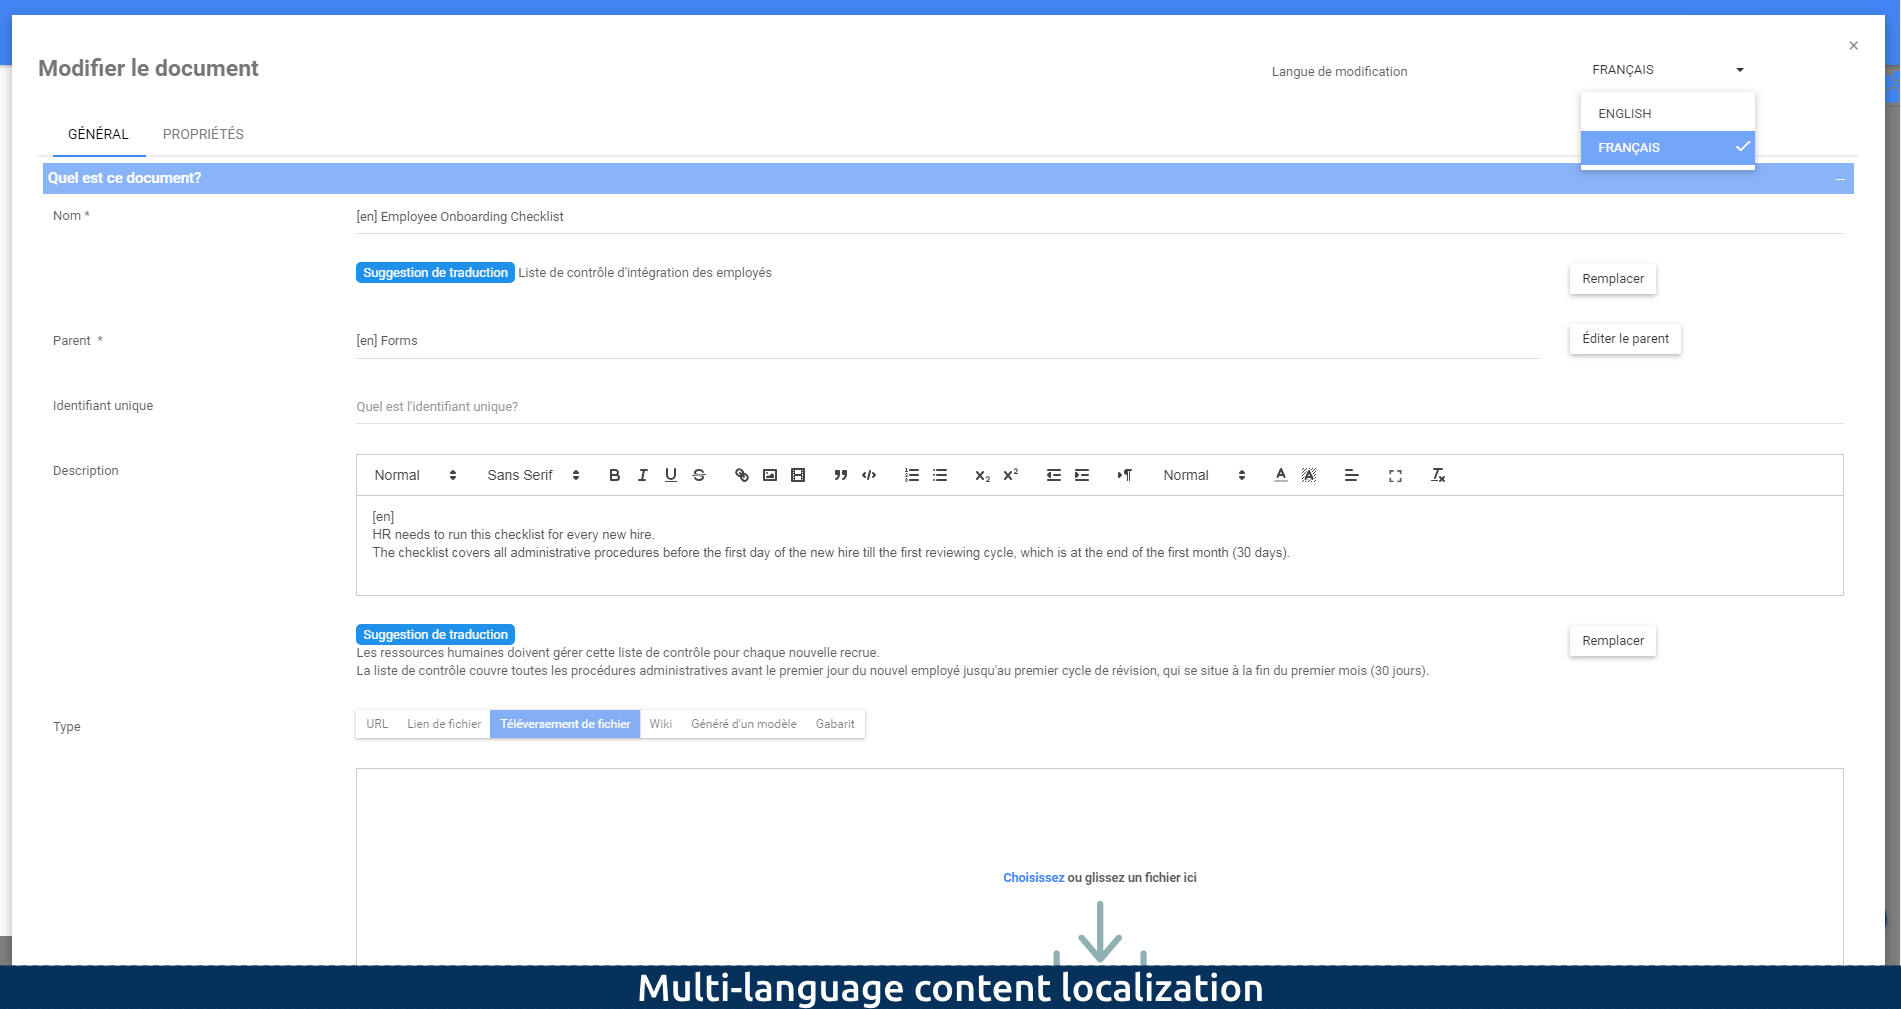 Multi-language content localization